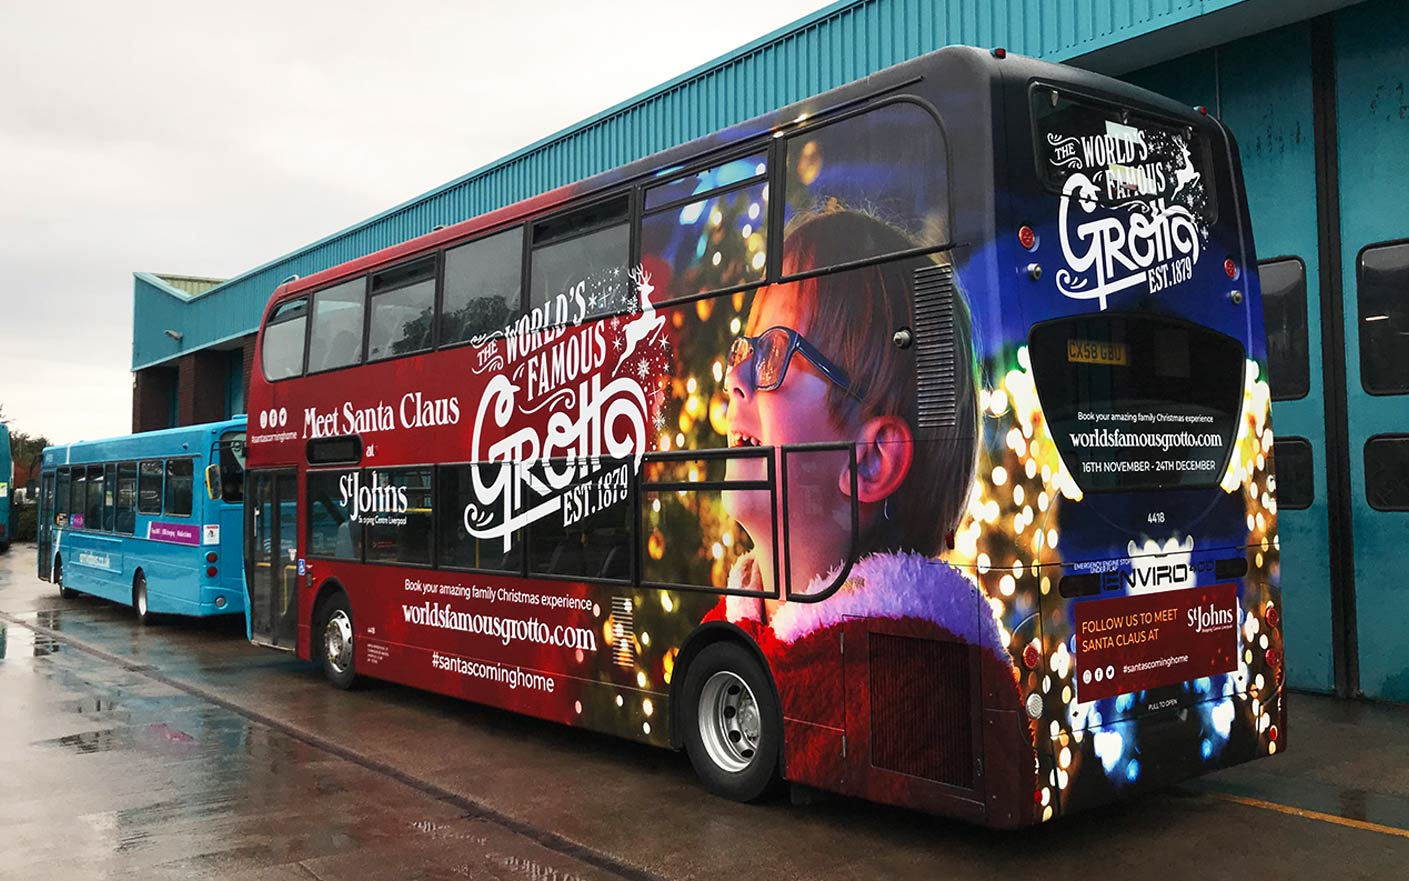 Double decker bus wrap arriva Liverpool famous grotto